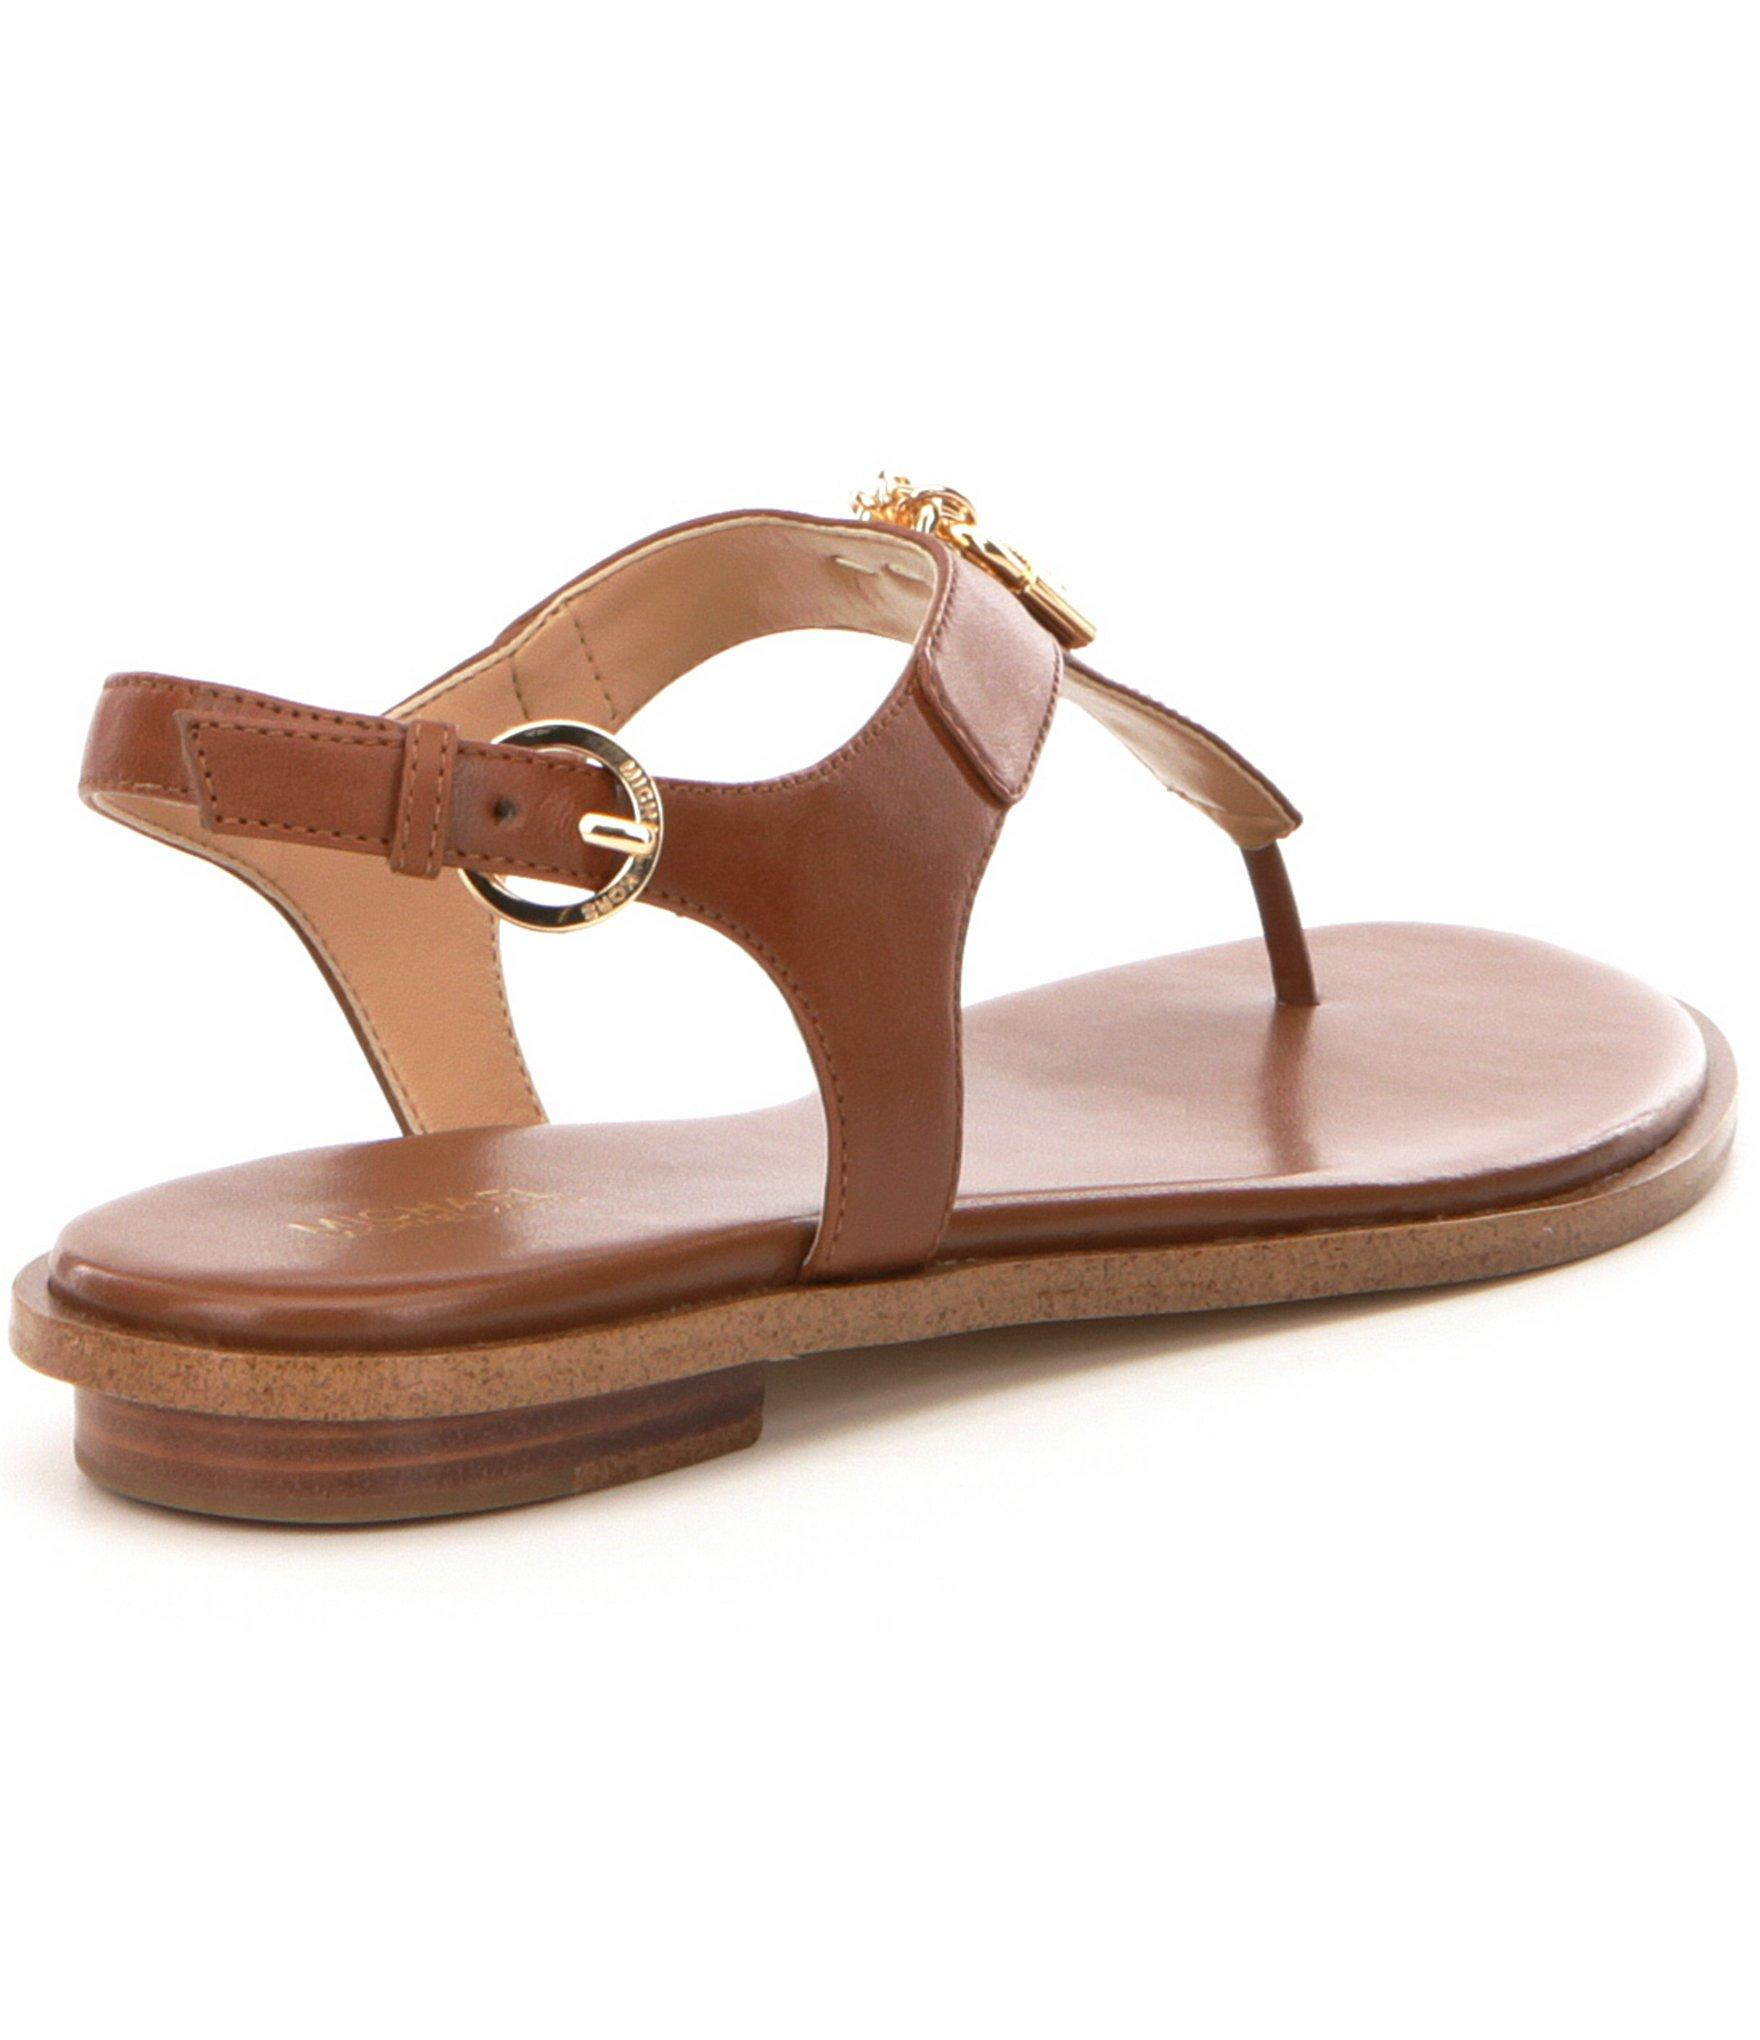 5c0583db69ef MICHAEL Michael Kors - Brown Suki Leather   Charms Thong Sandals - Lyst.  View fullscreen